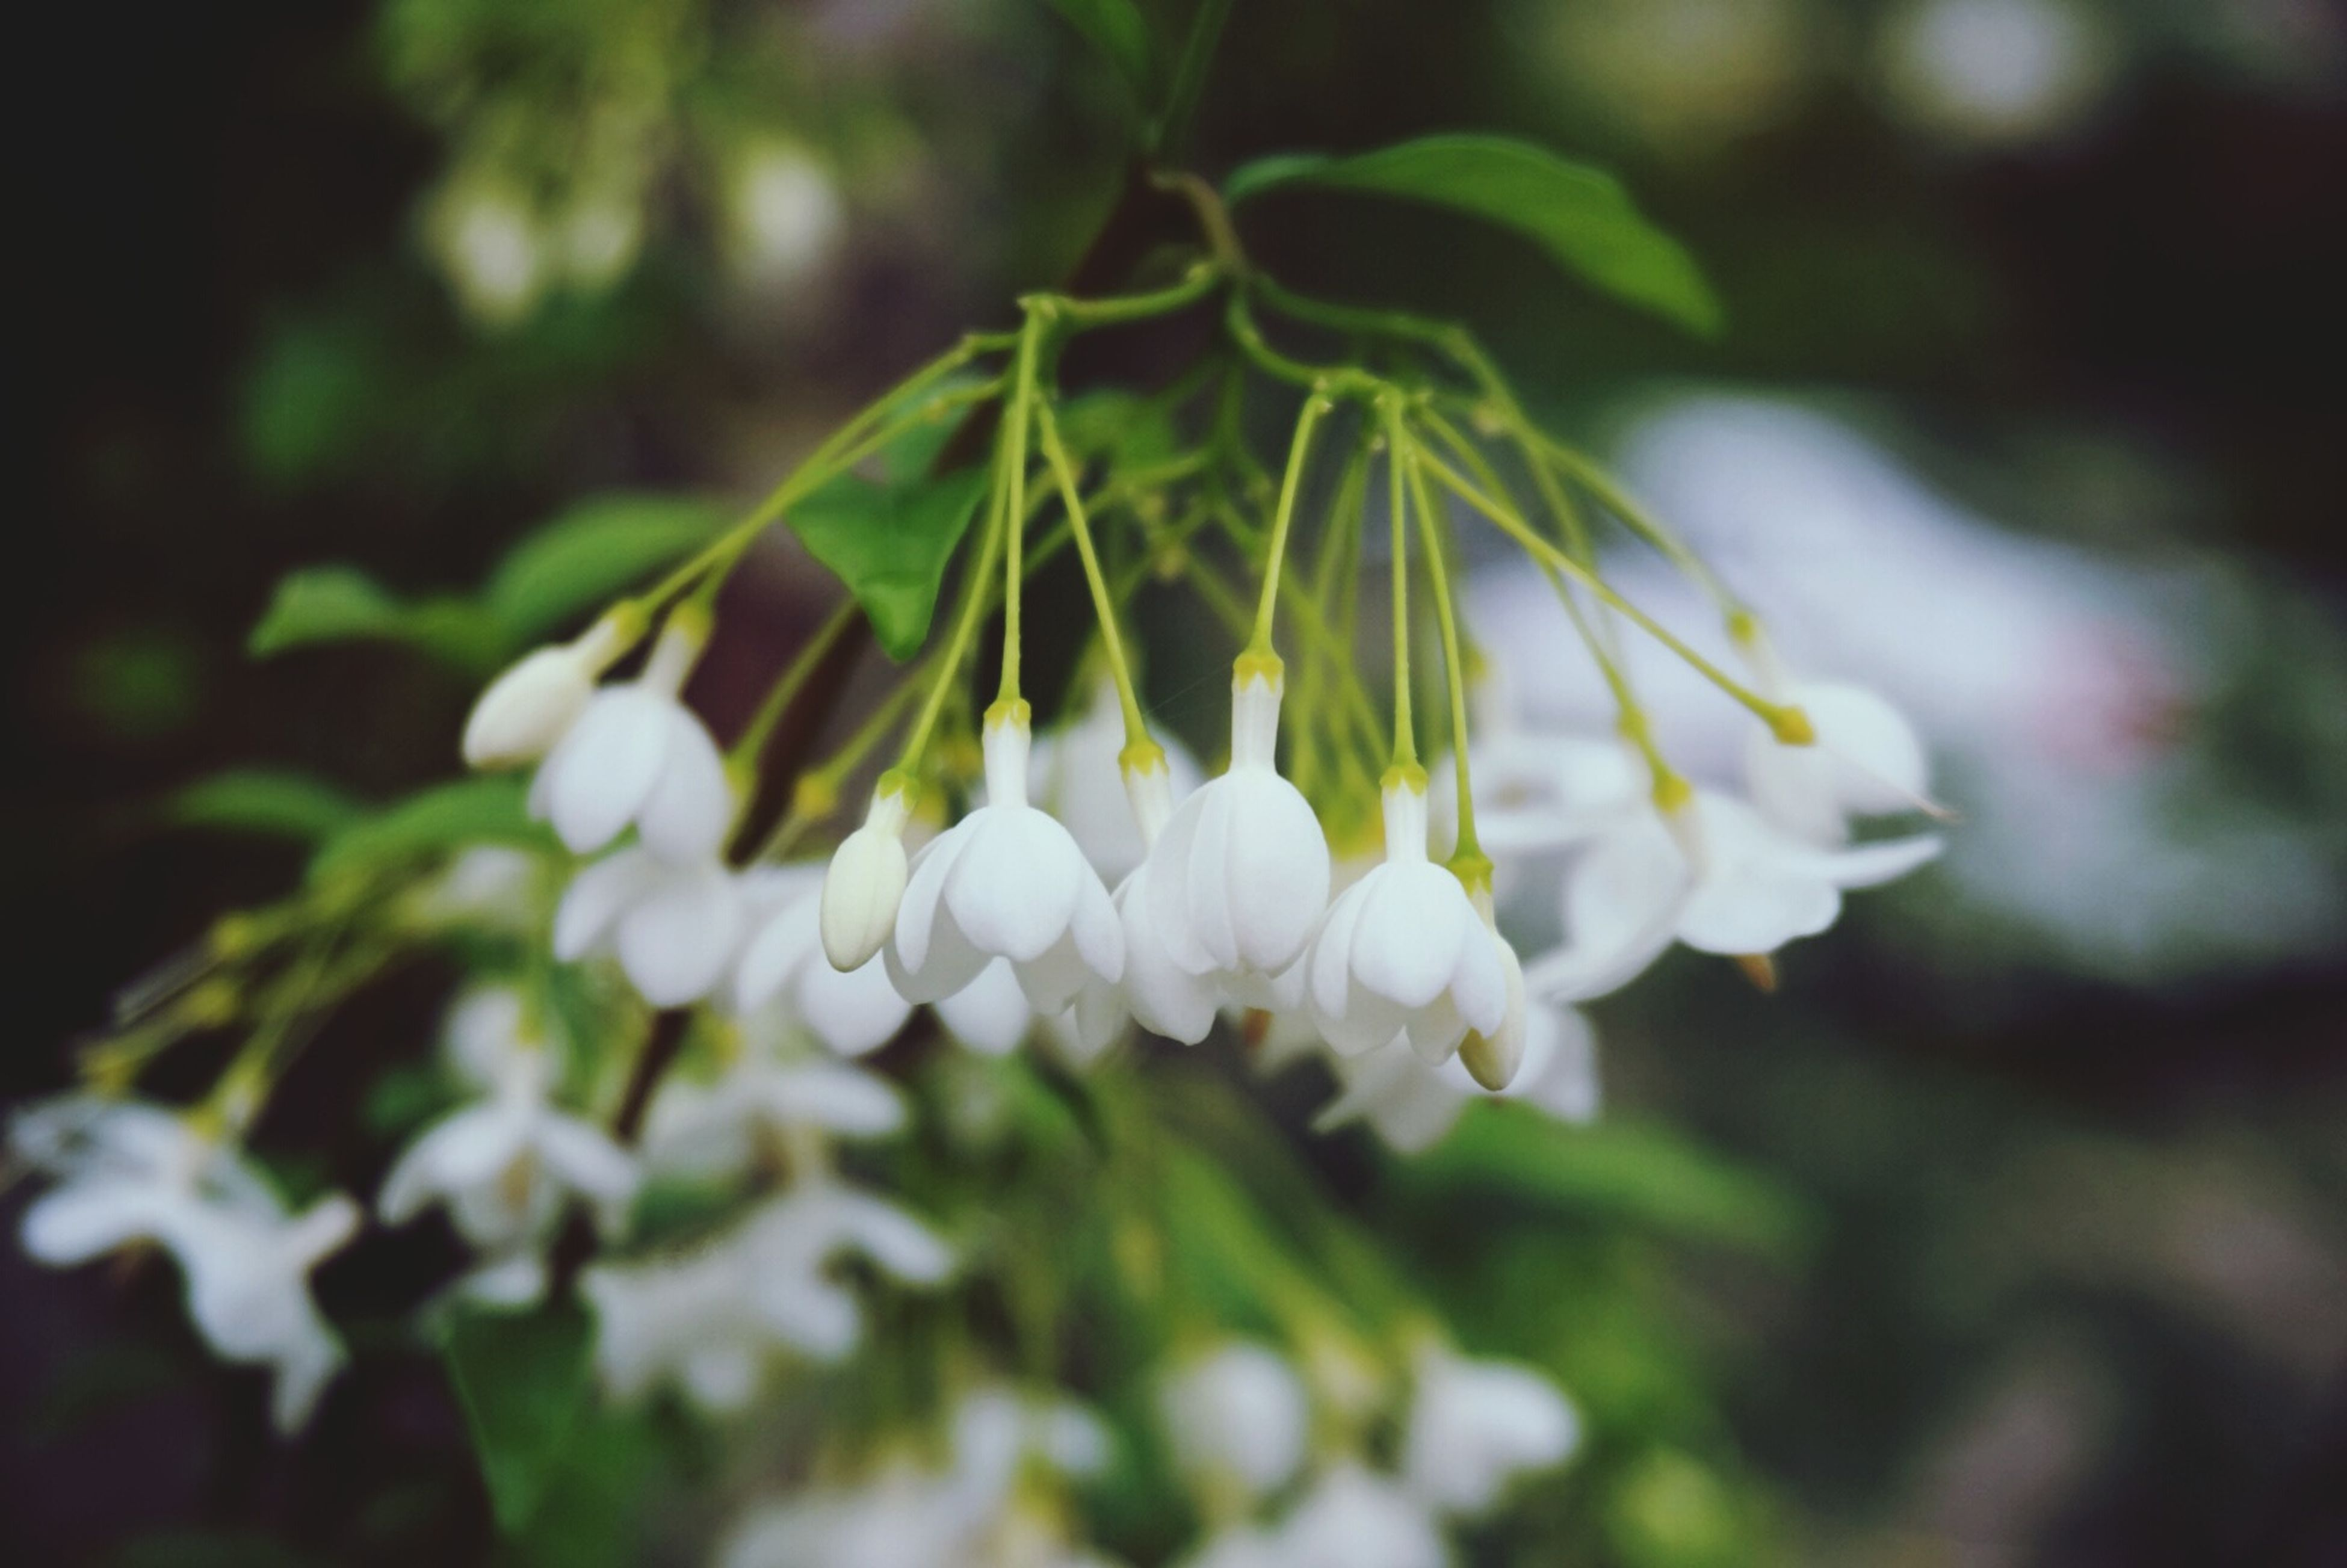 flower, growth, freshness, fragility, white color, petal, close-up, beauty in nature, focus on foreground, nature, flower head, selective focus, plant, blooming, in bloom, blossom, outdoors, botany, park - man made space, day